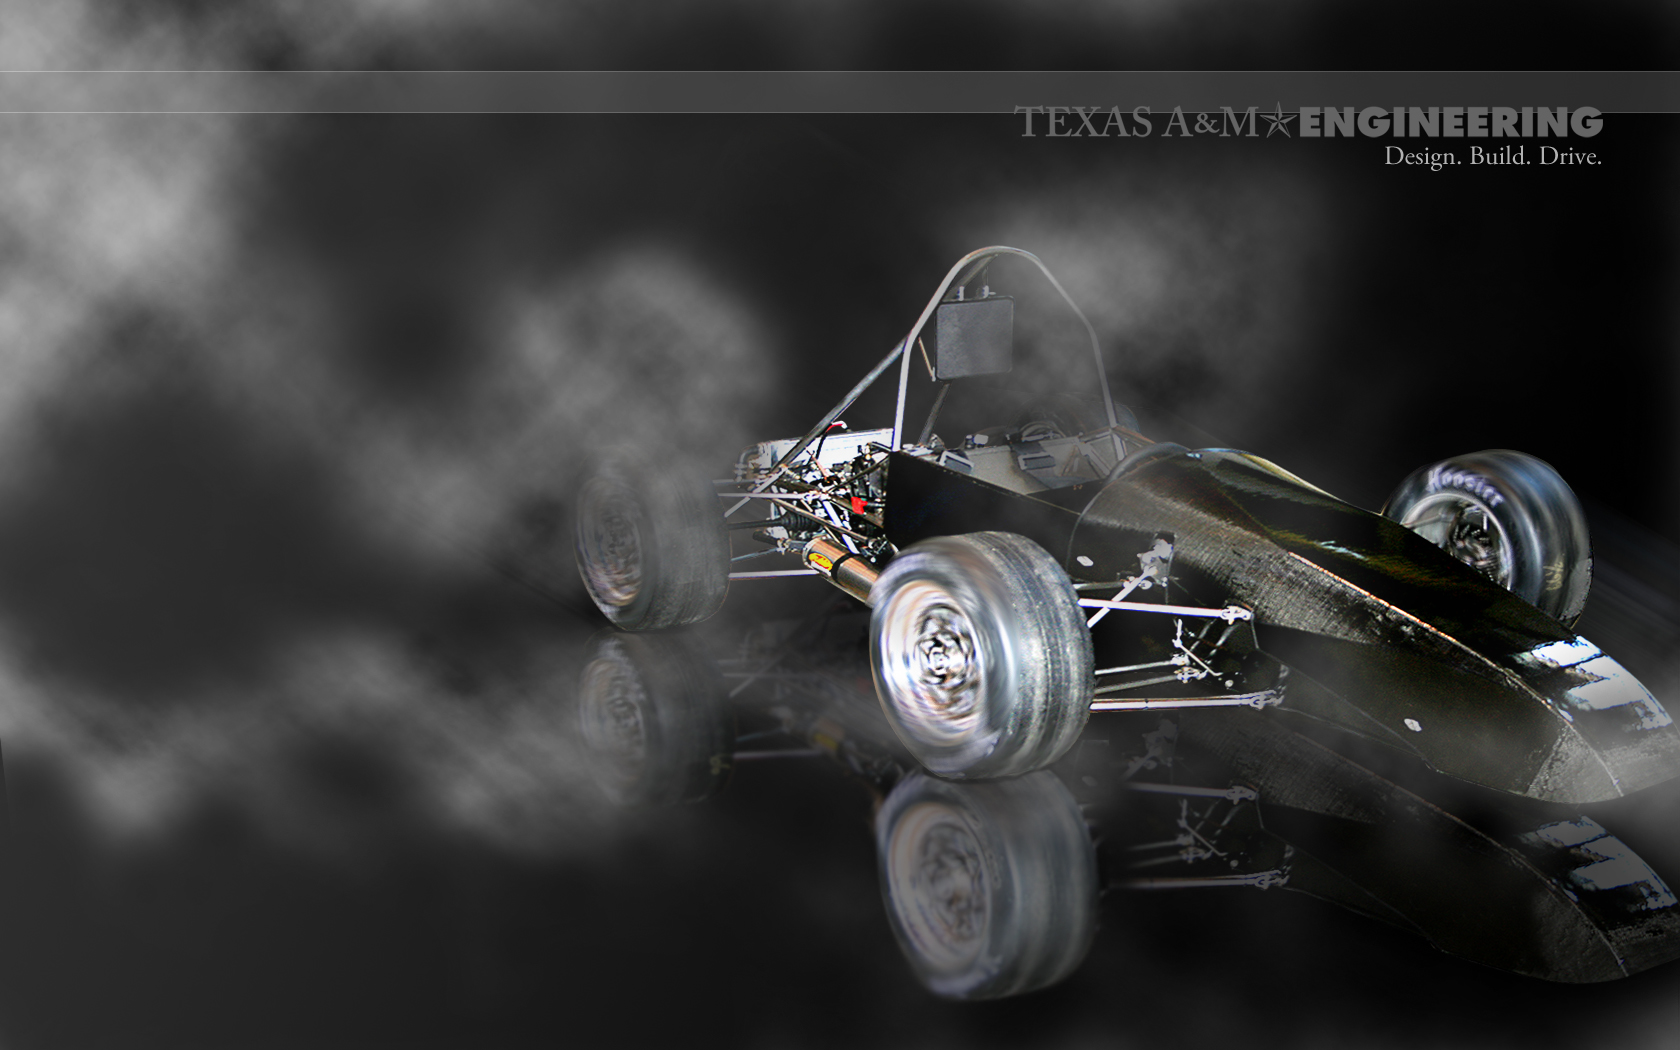 Cool Wallpaper 1680x1050: Think Big Texas Aampm Engineering Wallpapers 1680x1050px